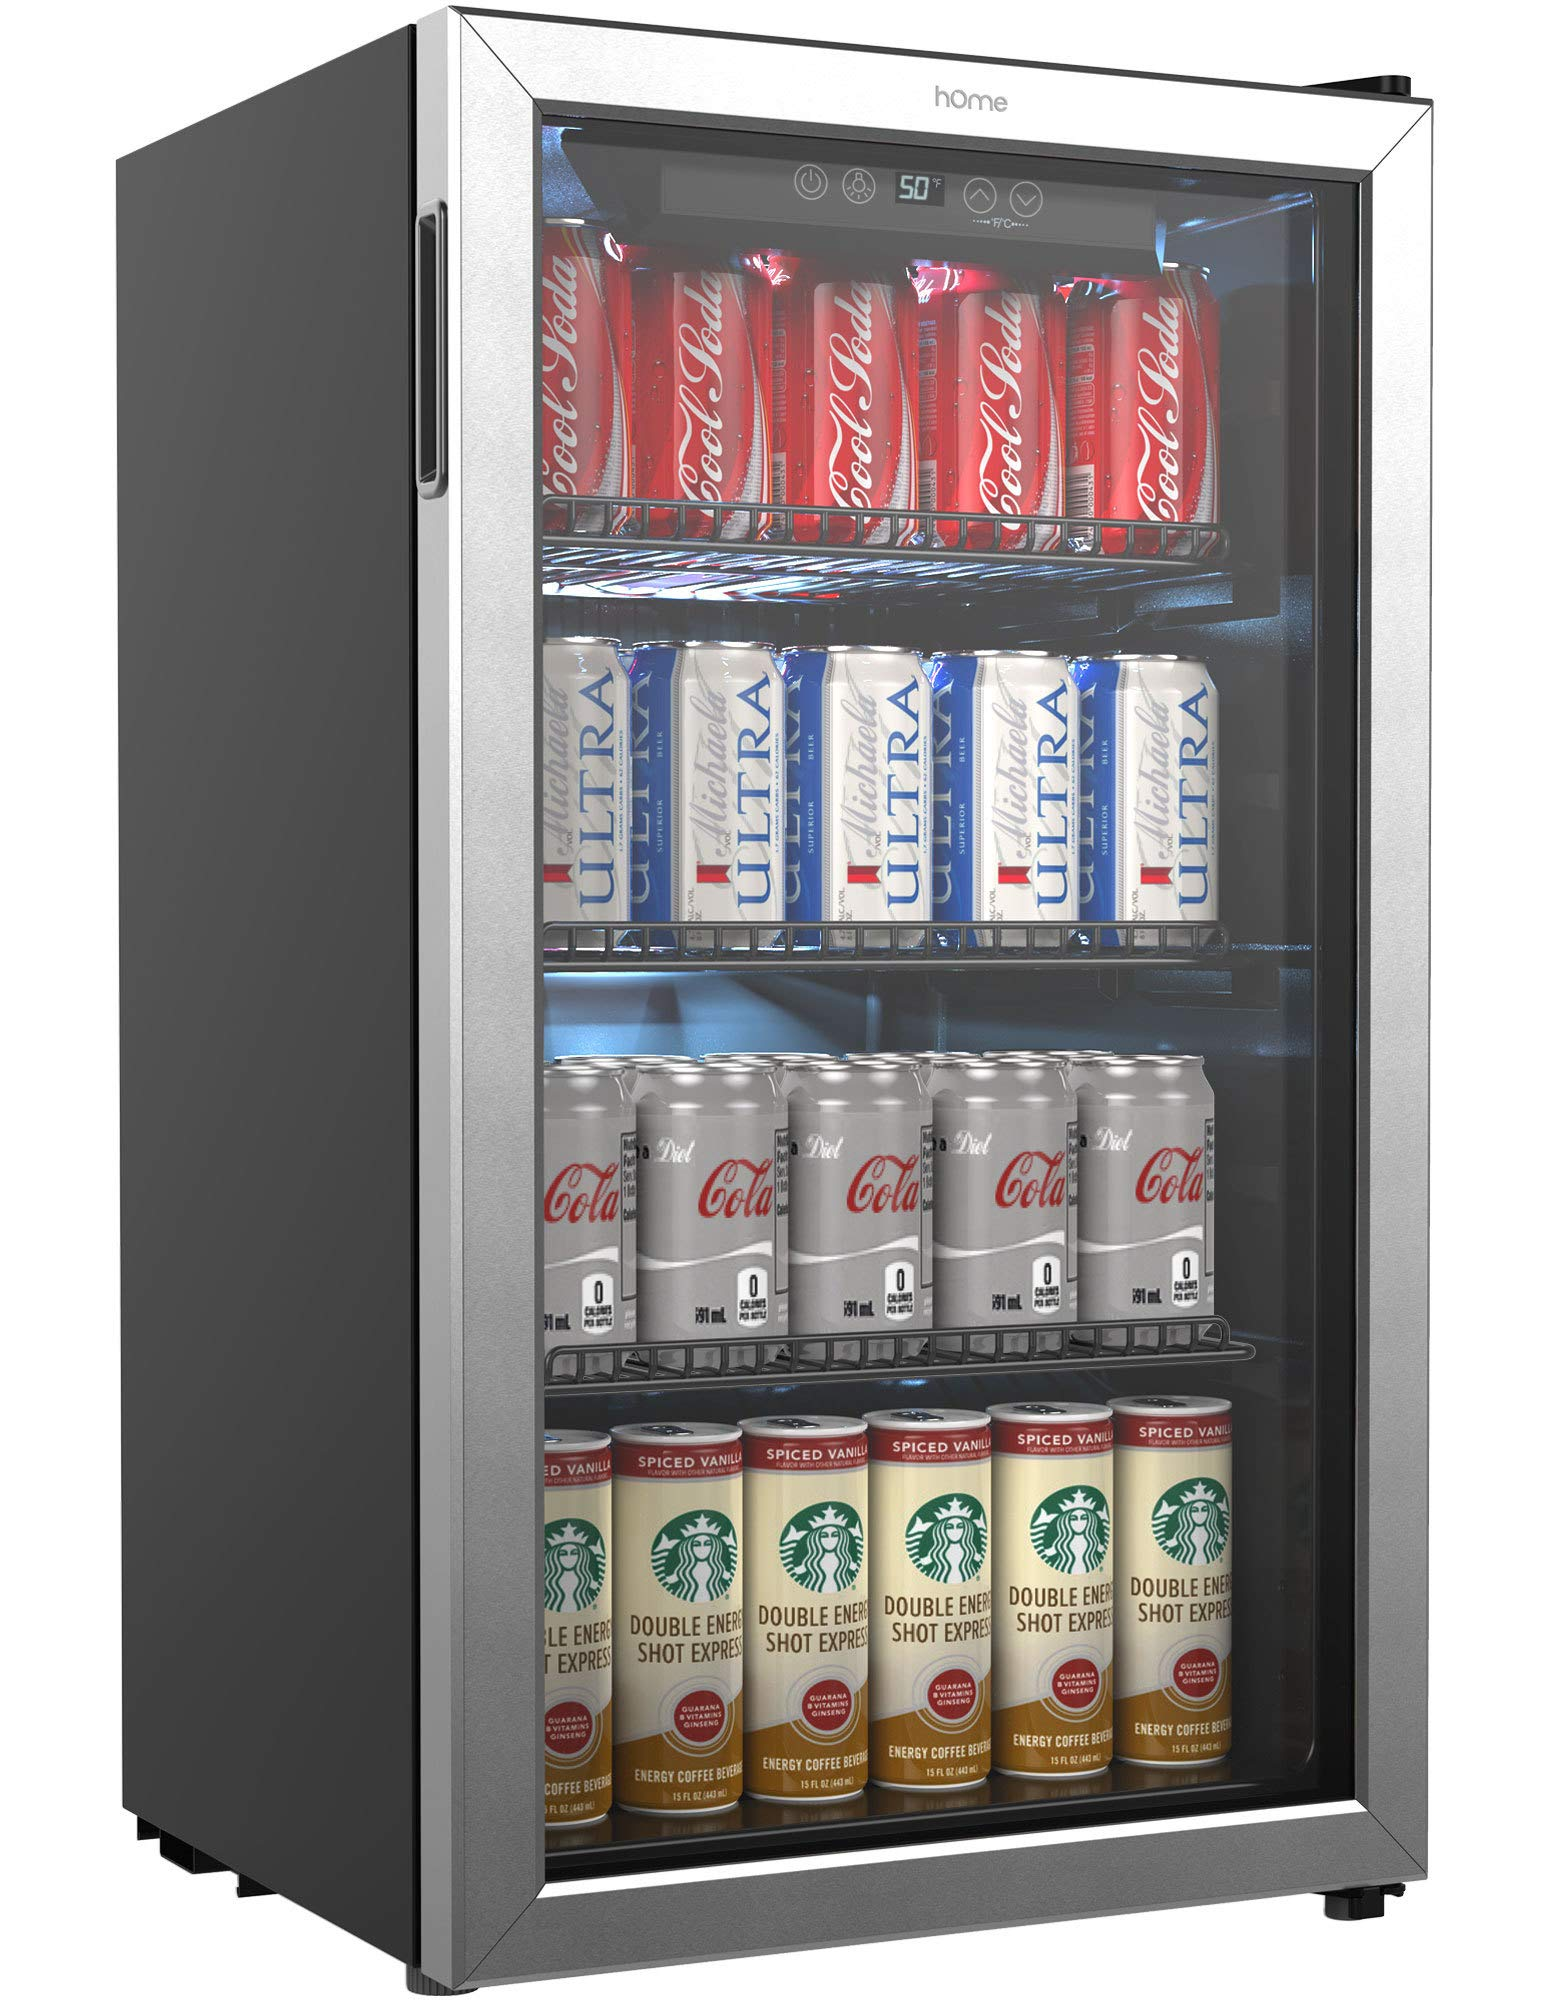 Homelabs Beverage Refrigerator And Cooler Mini Fridge With Glass